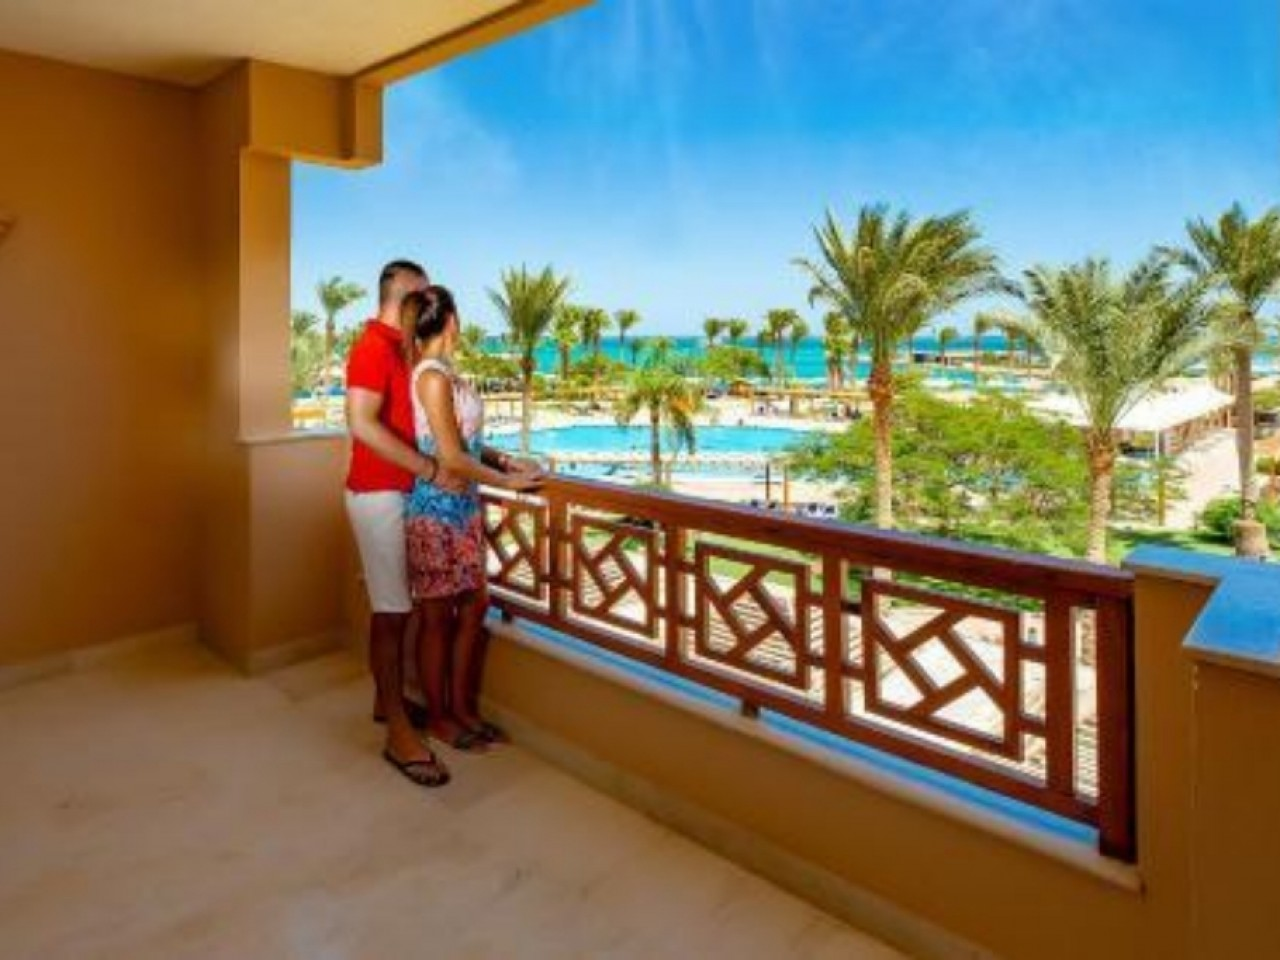 HONEYMOON PACKAGE: Continental Hotel, Hurghada